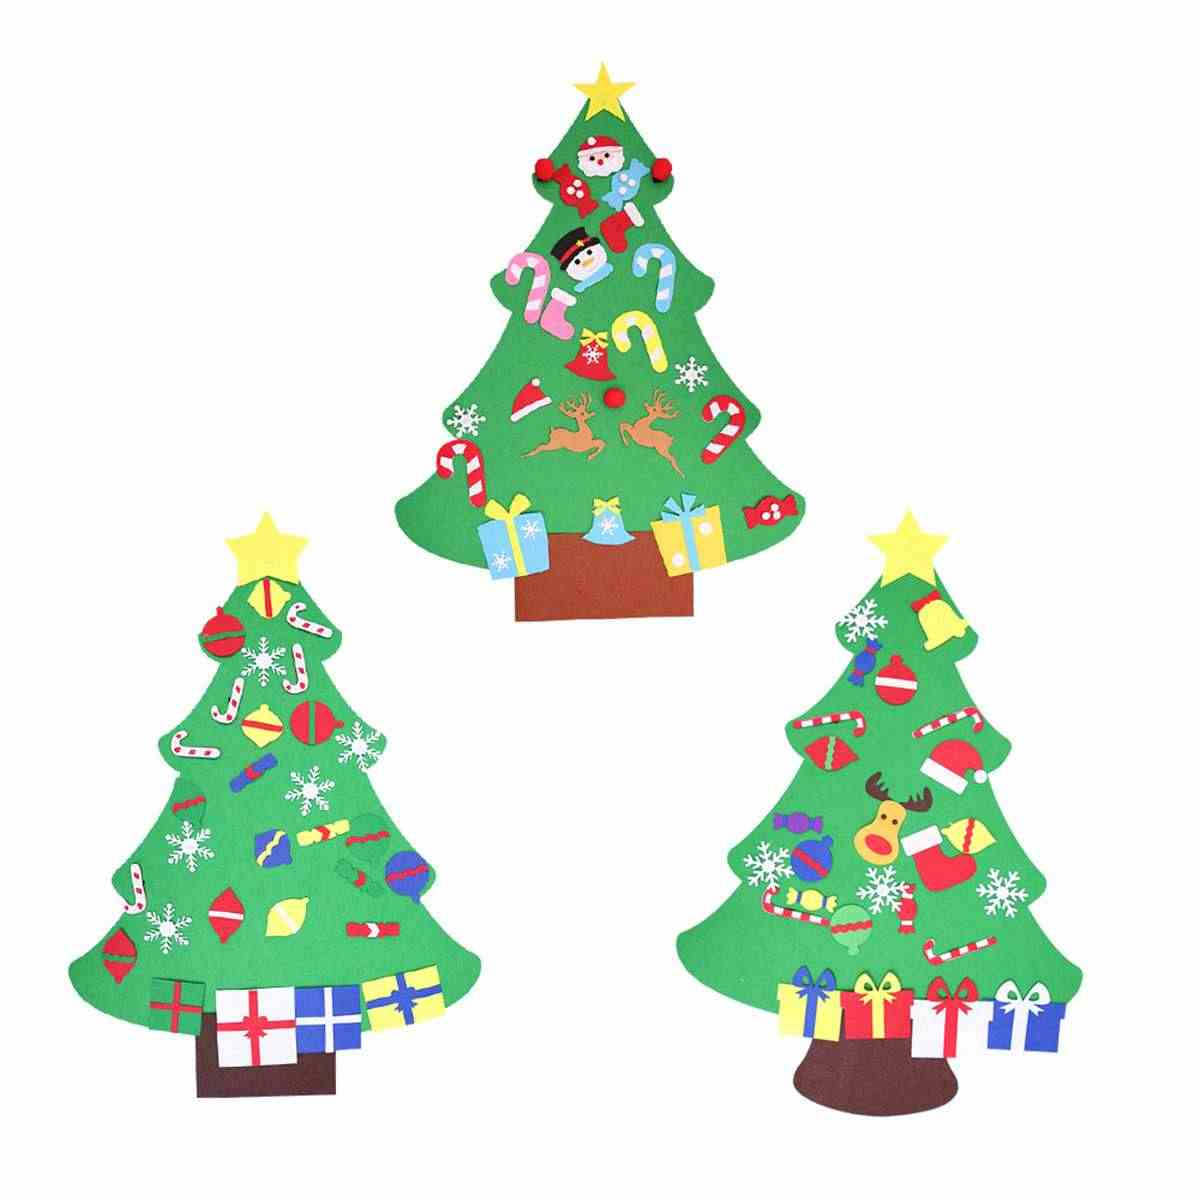 Toddler Christmas Tree Craft.100cm Diy Christmas Deluxe Felt Tree Wall Hanging Toddler Child Preschool Craft Decorations Gift